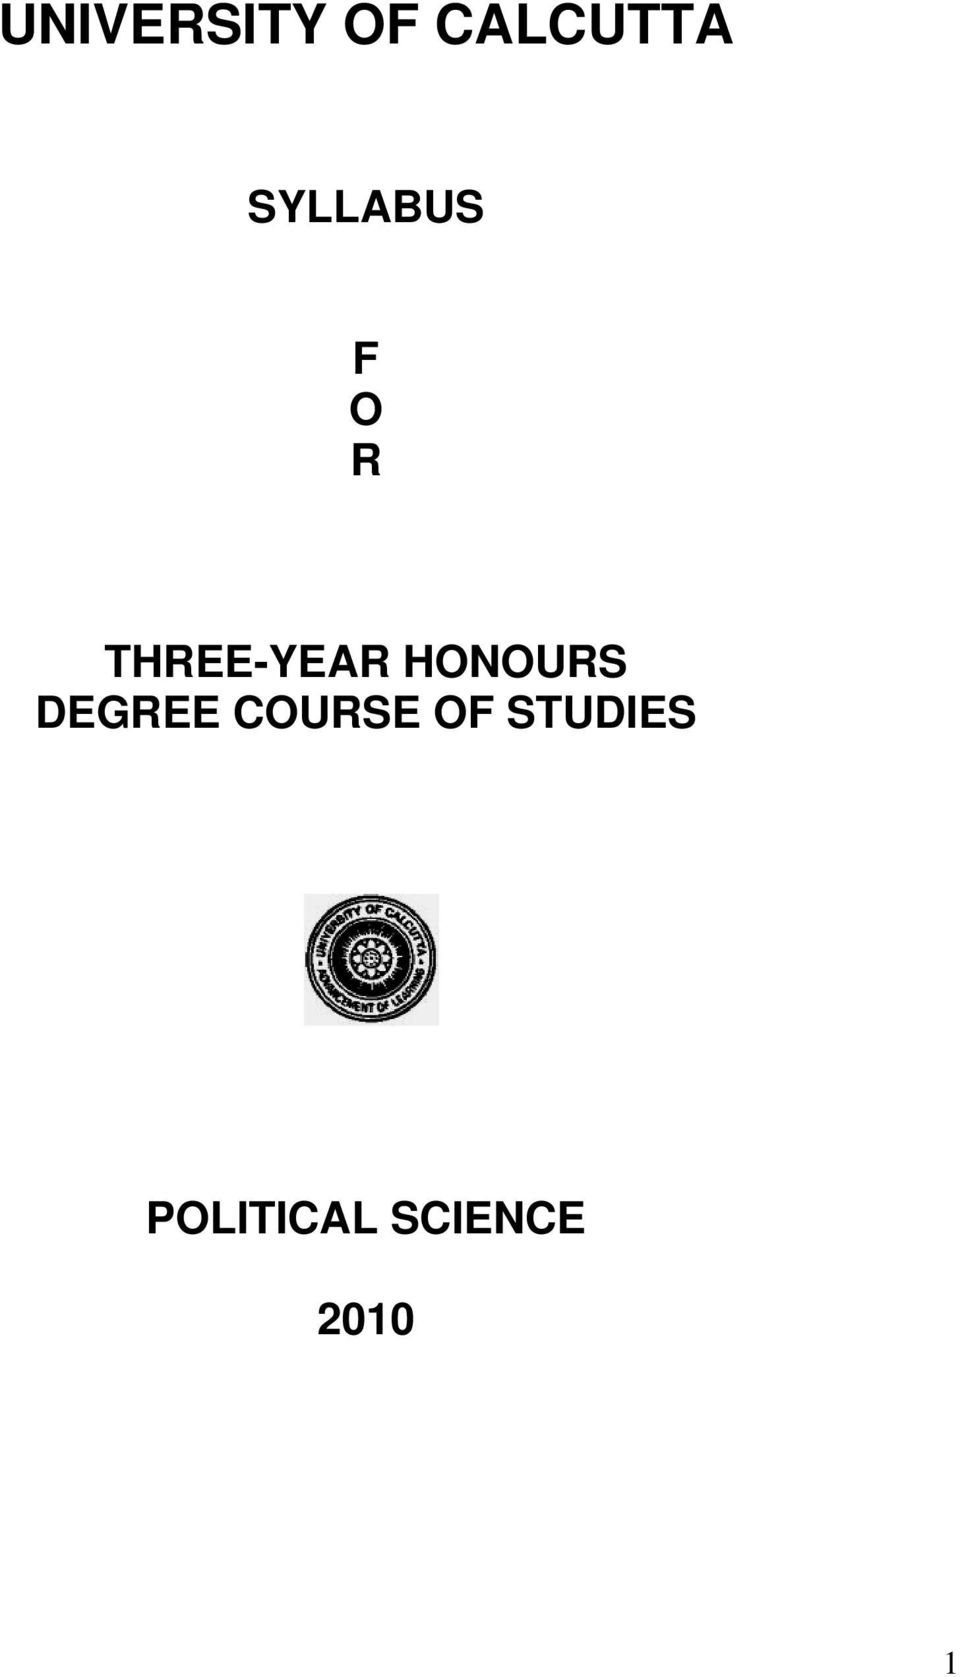 HONOURS DEGREE COURSE OF